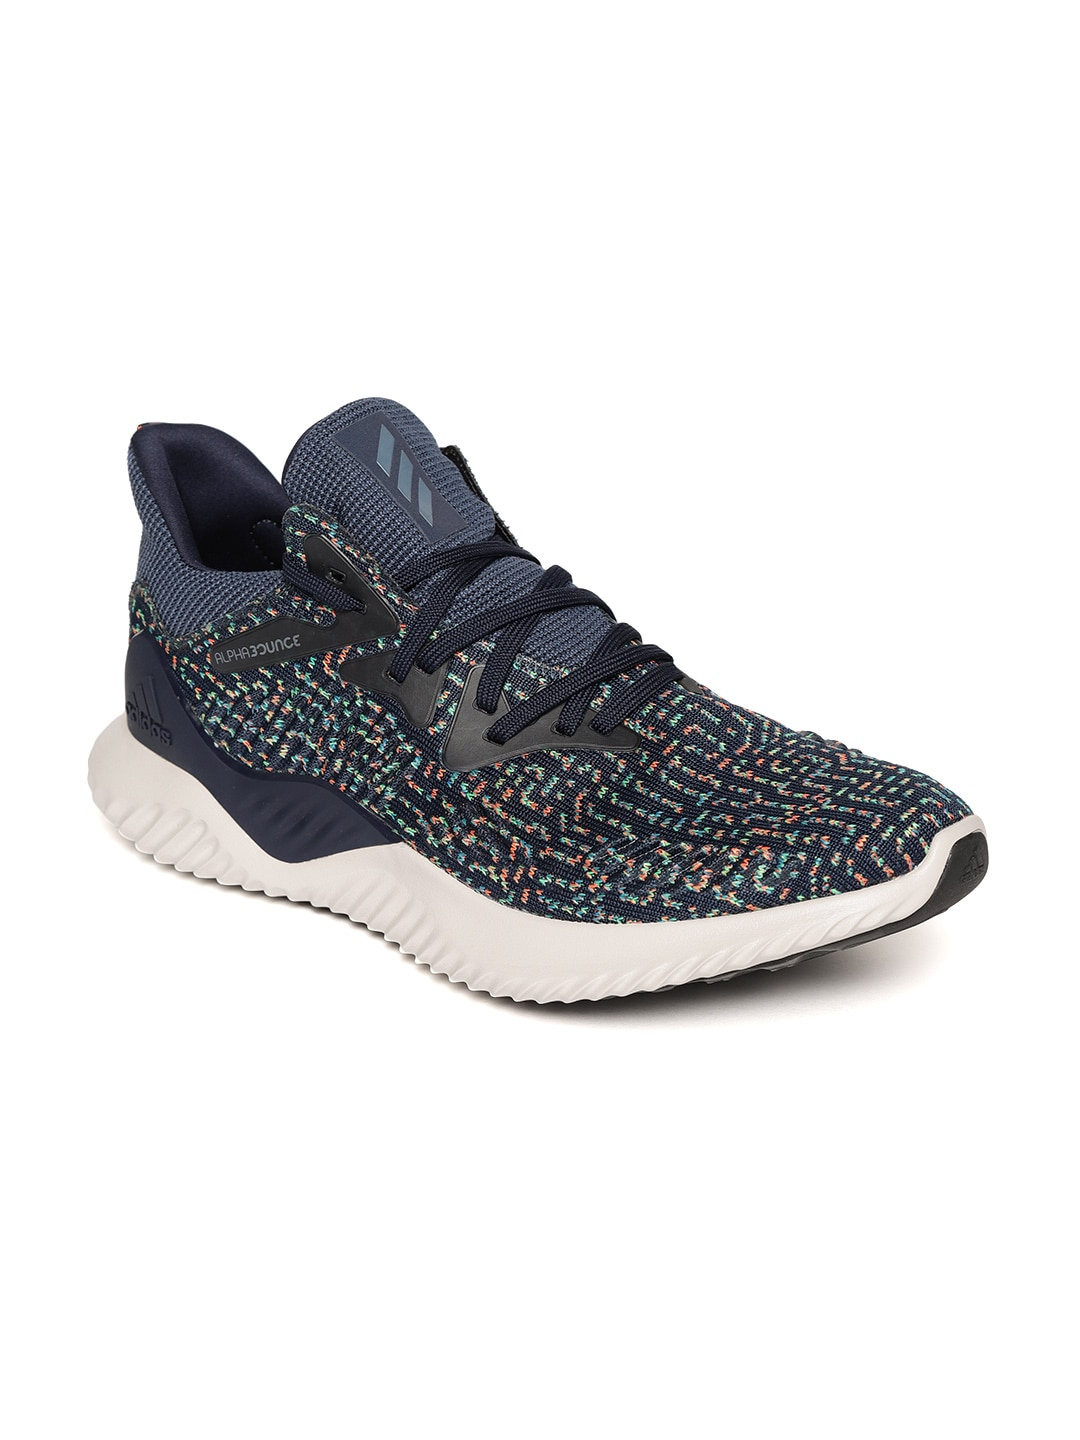 357e33a44 Alphabounce - Buy Alphabounce online in India